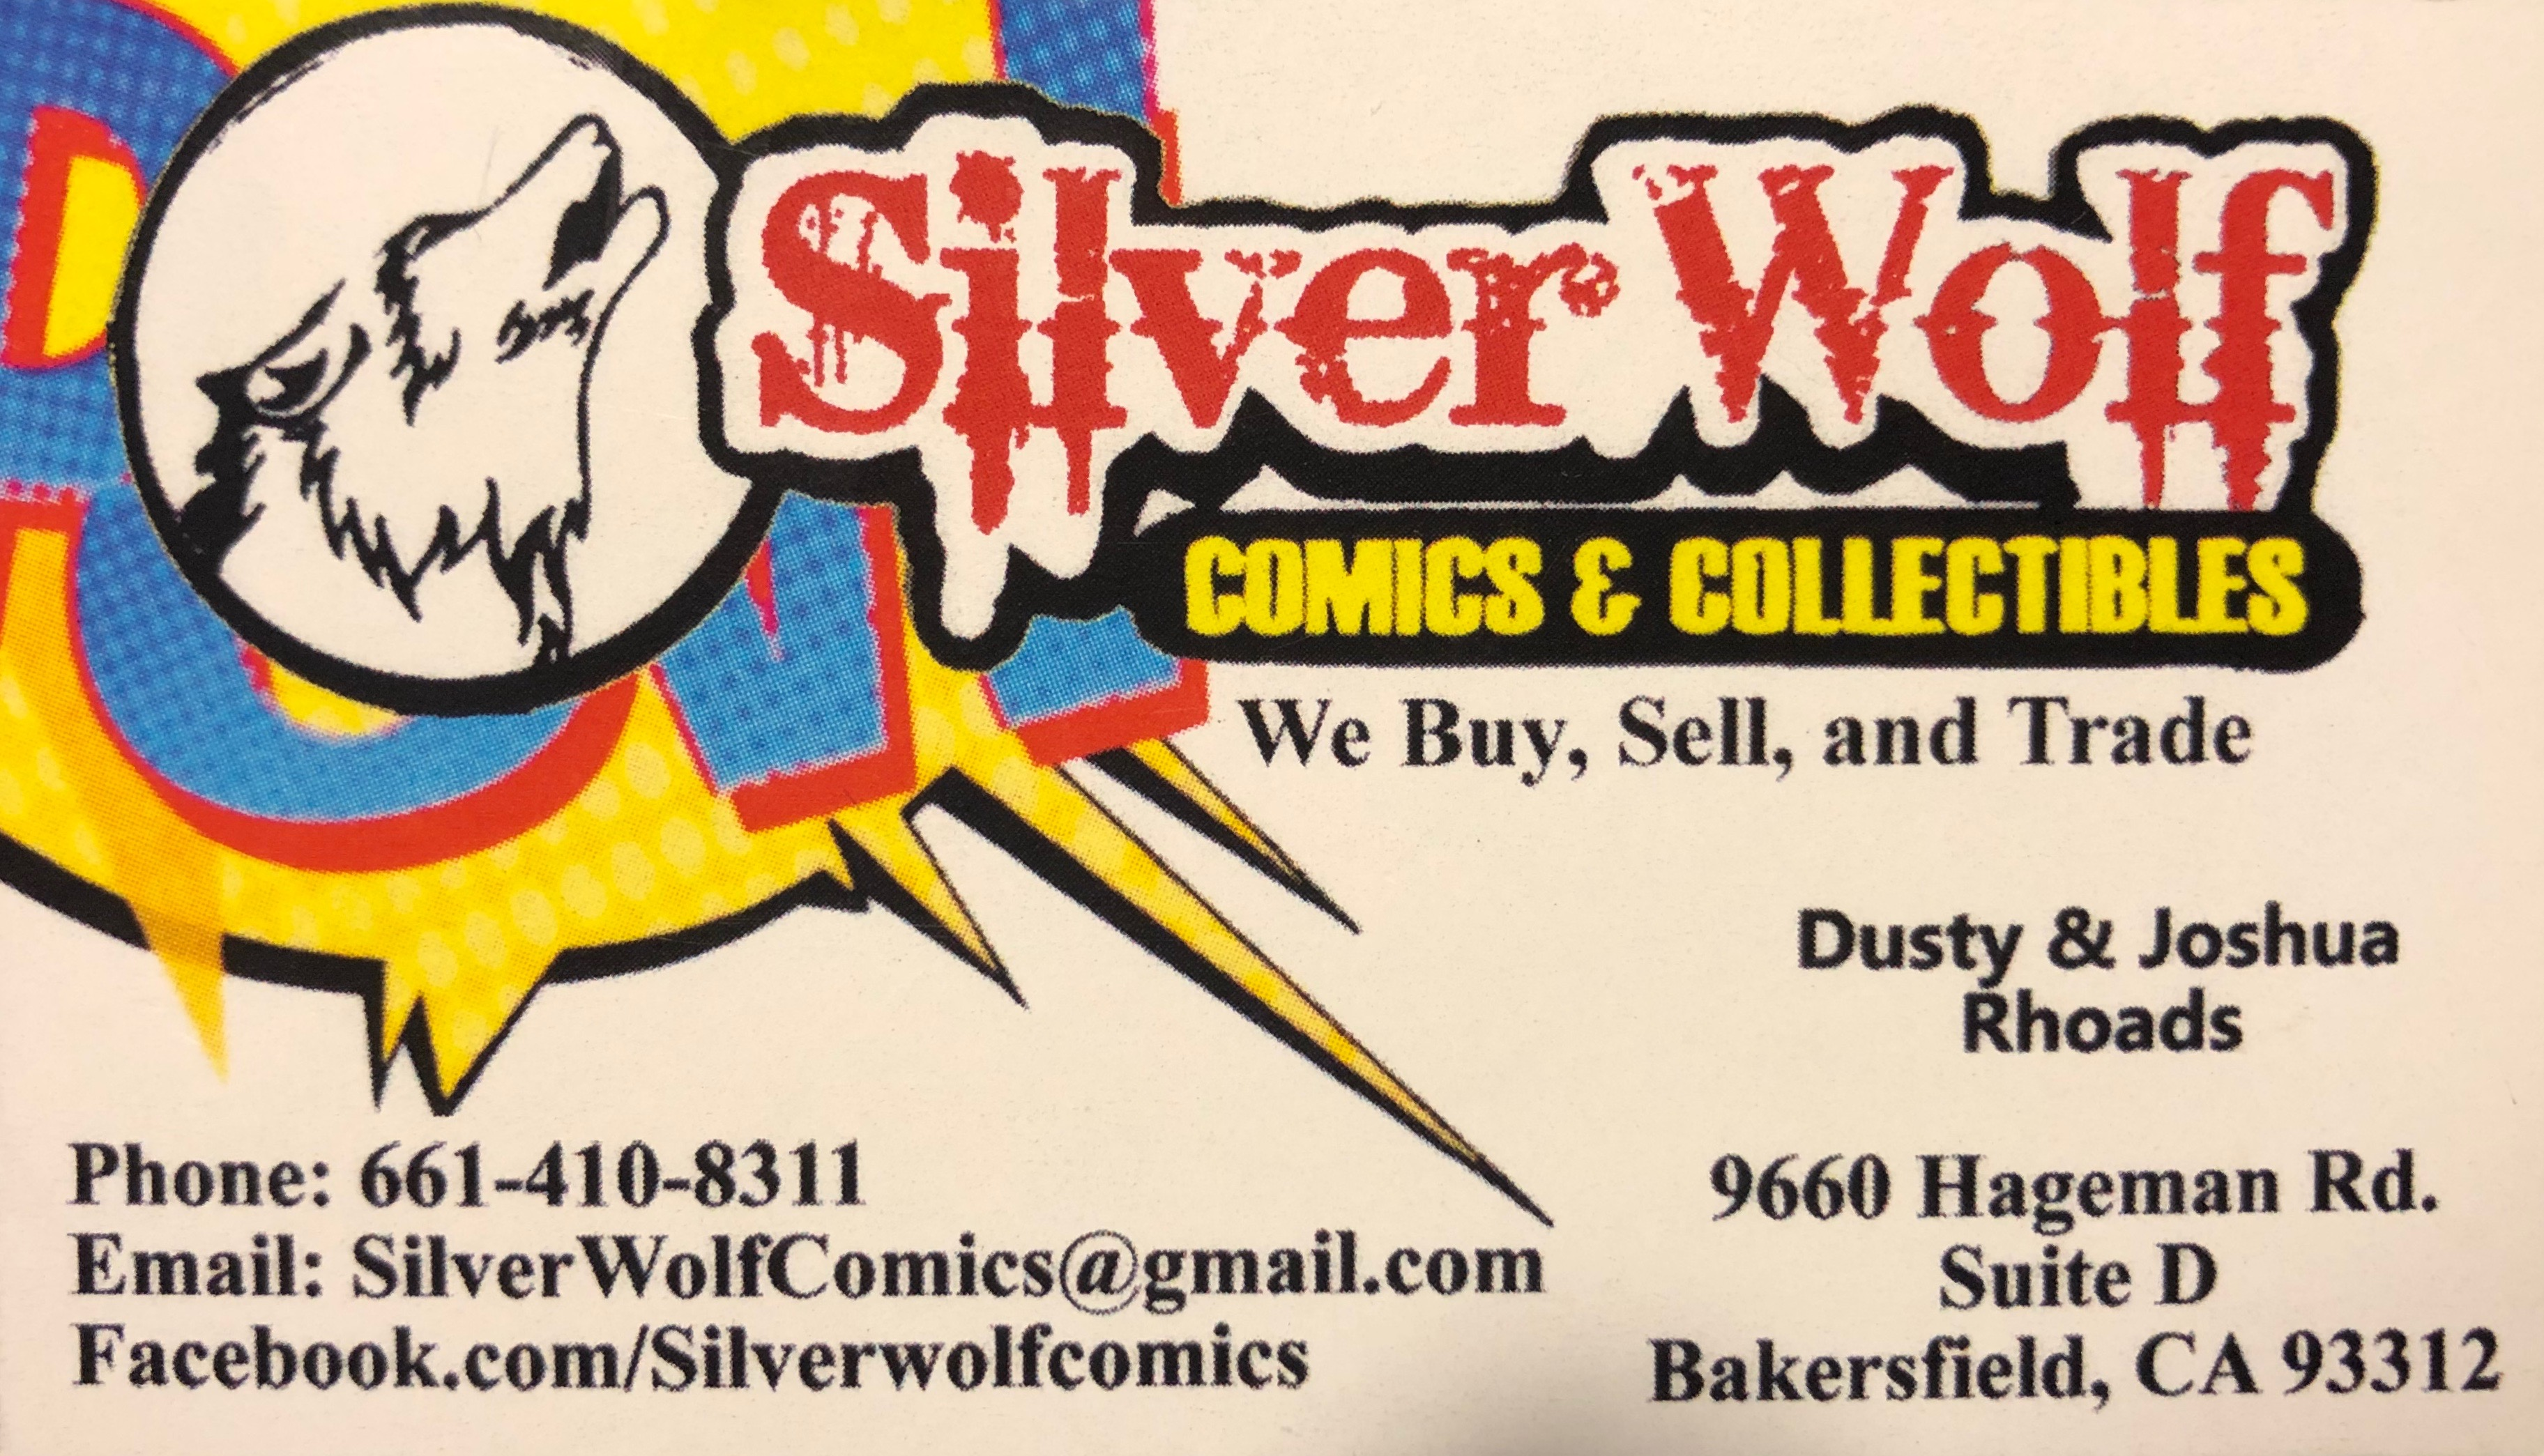 Silver Wolf Comics & Collectibles